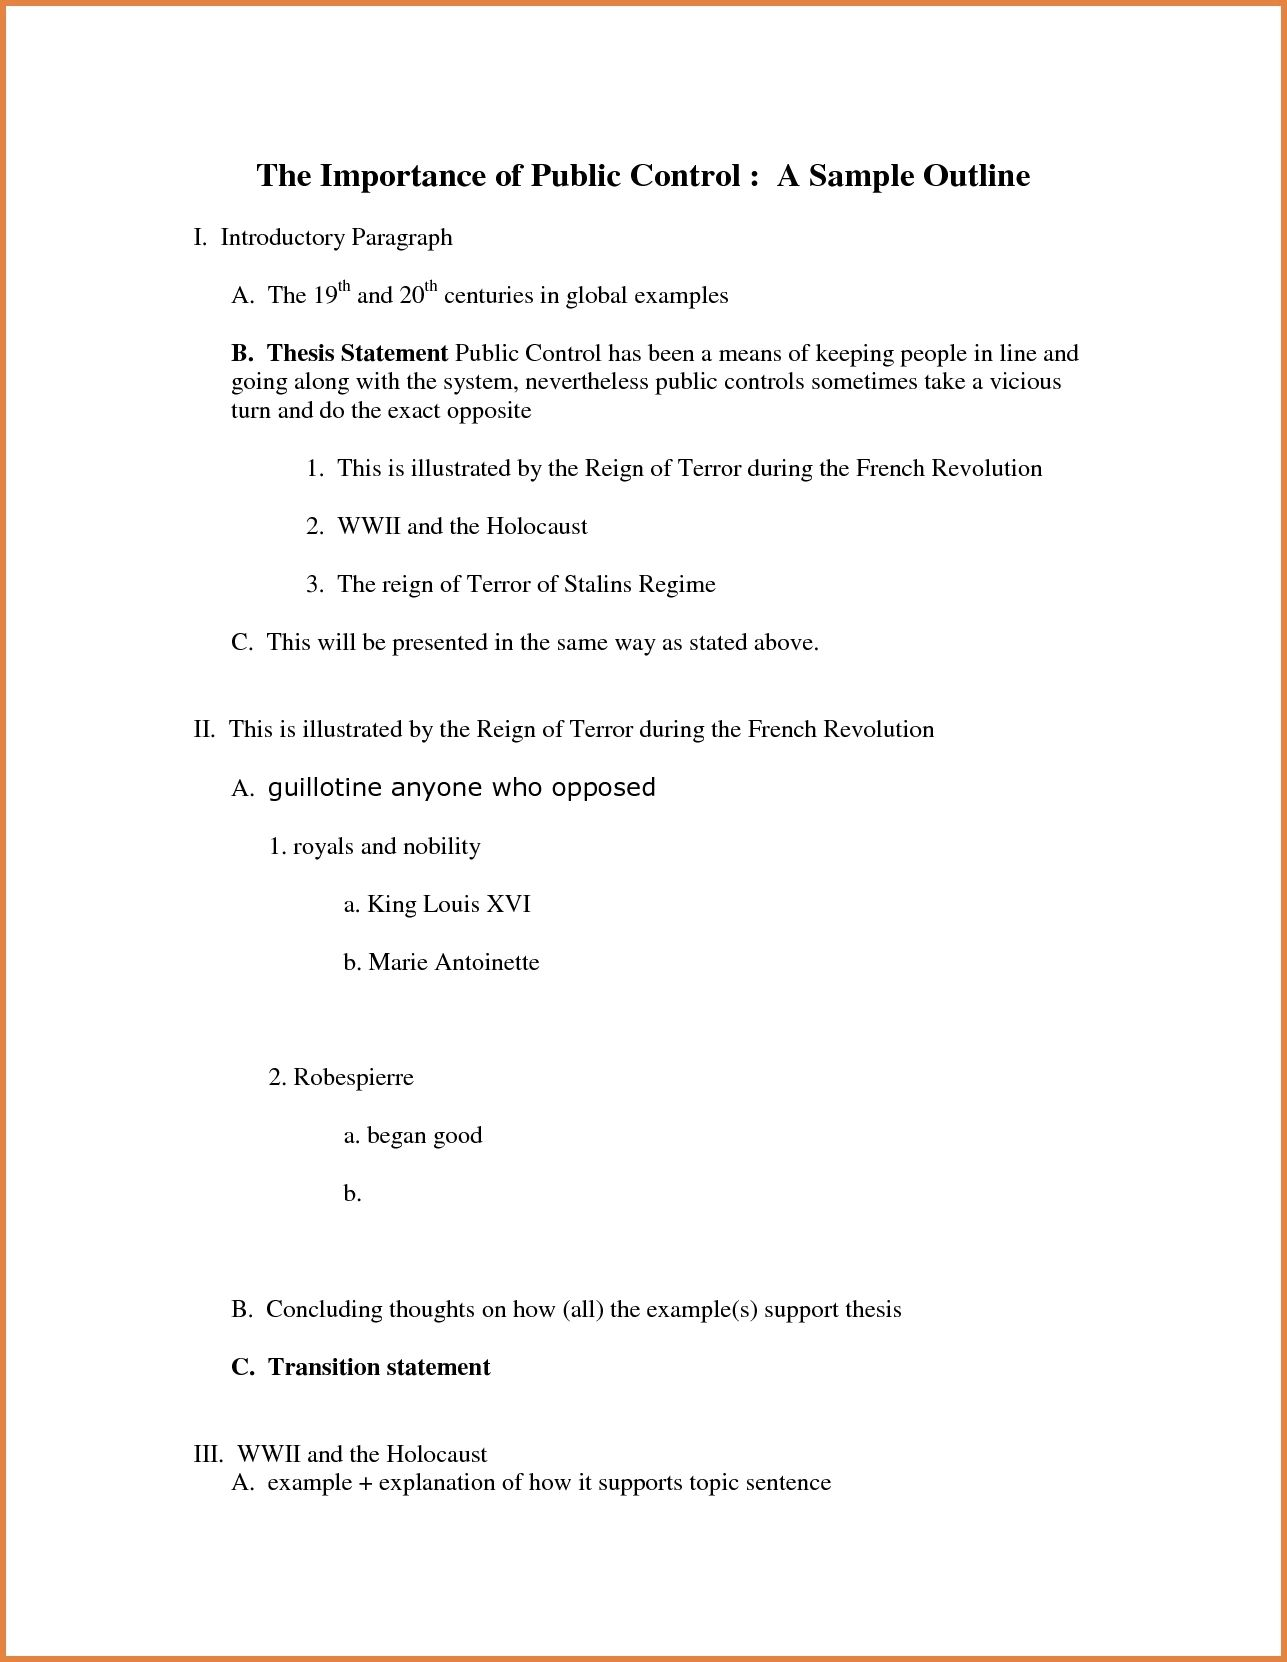 apa style outline examples